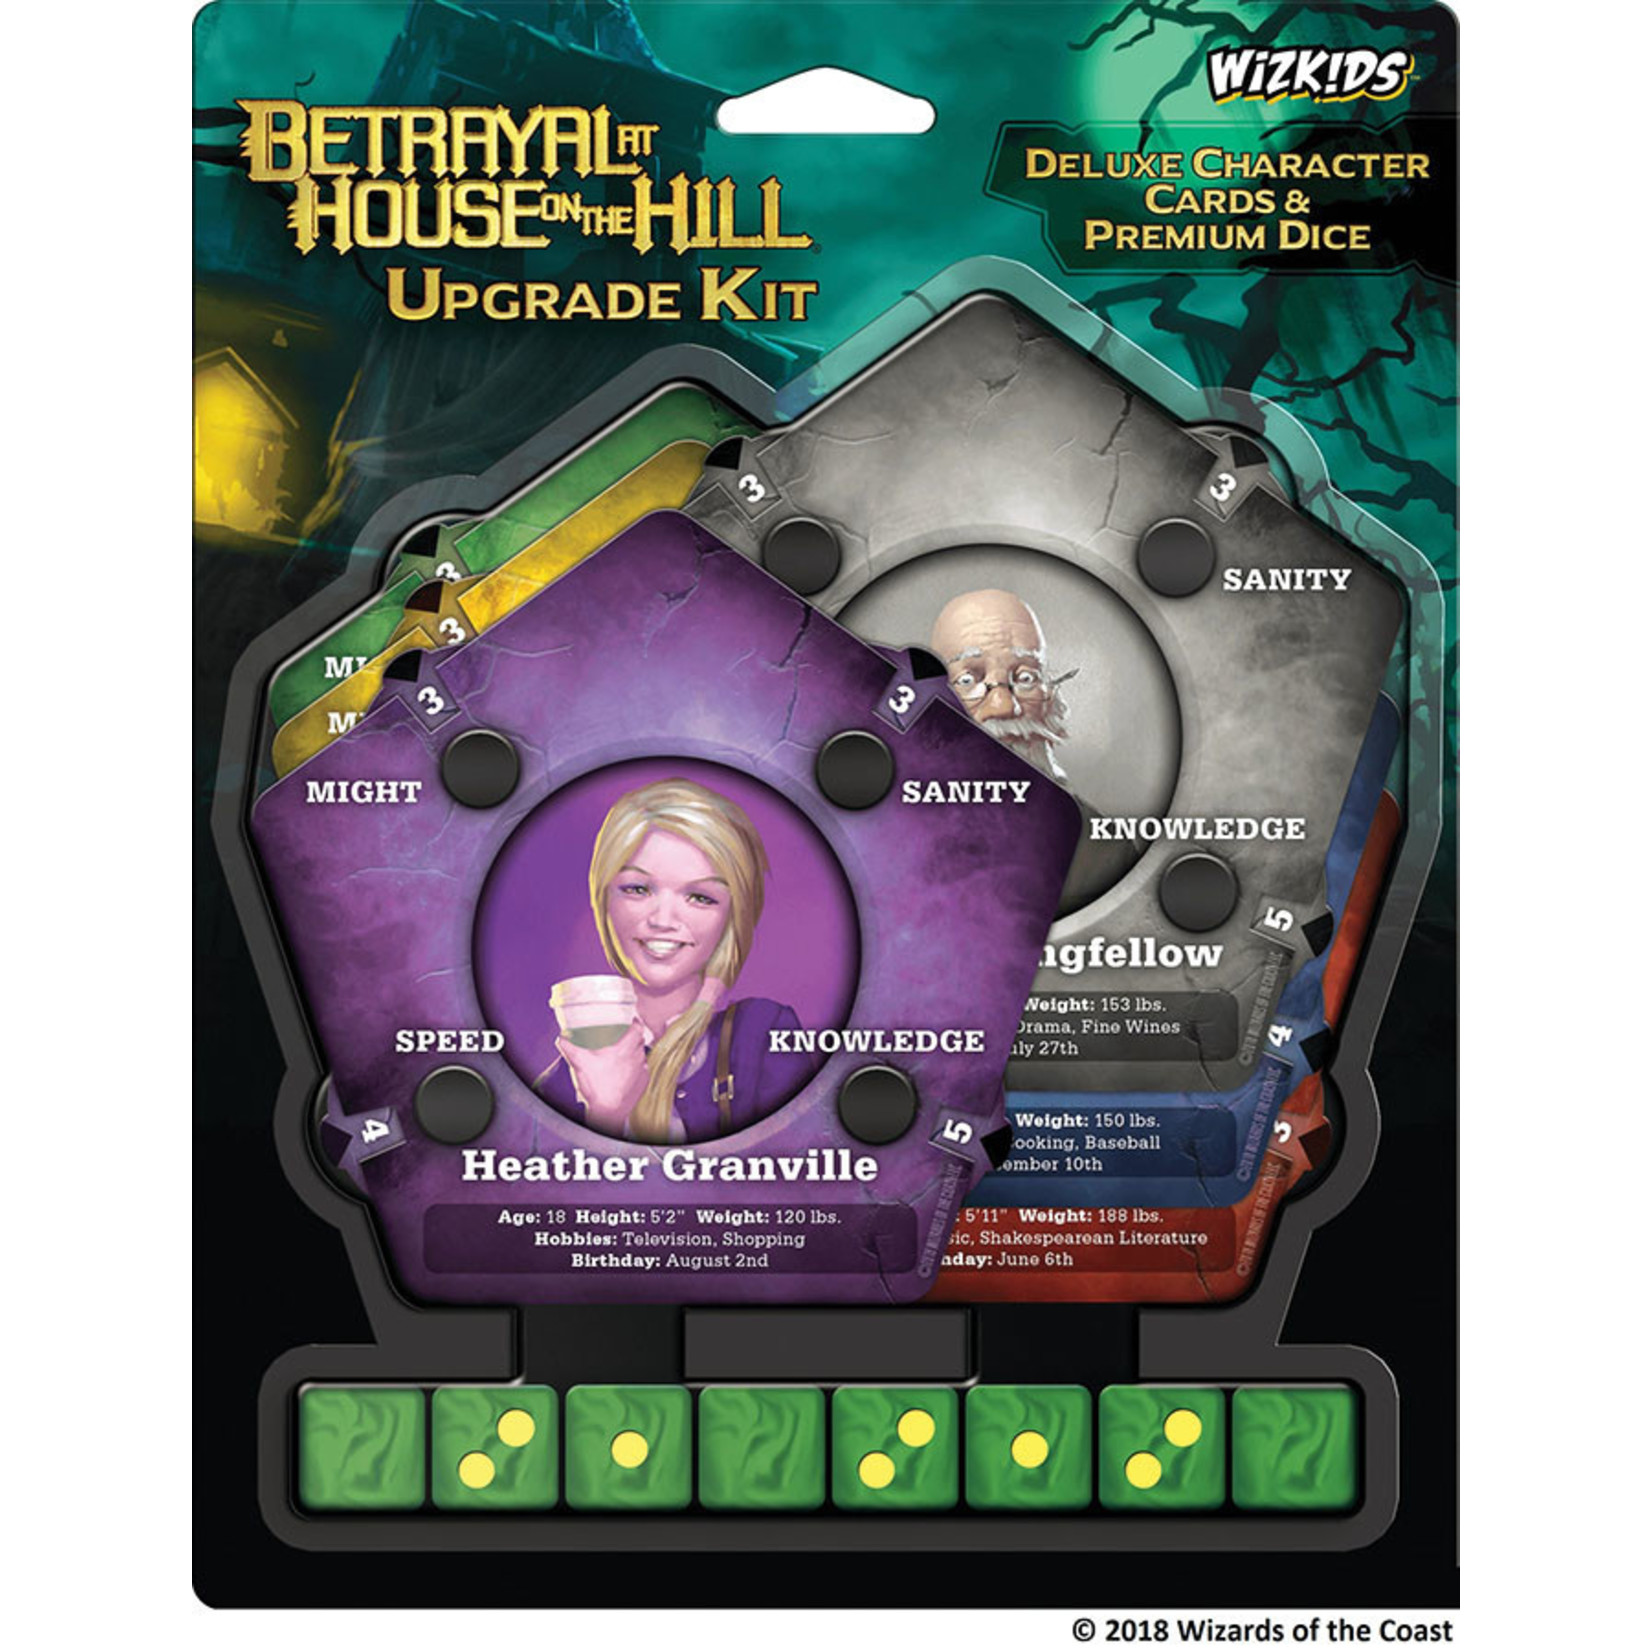 WizKids Betrayal at House on the Hill Upgrade Kit